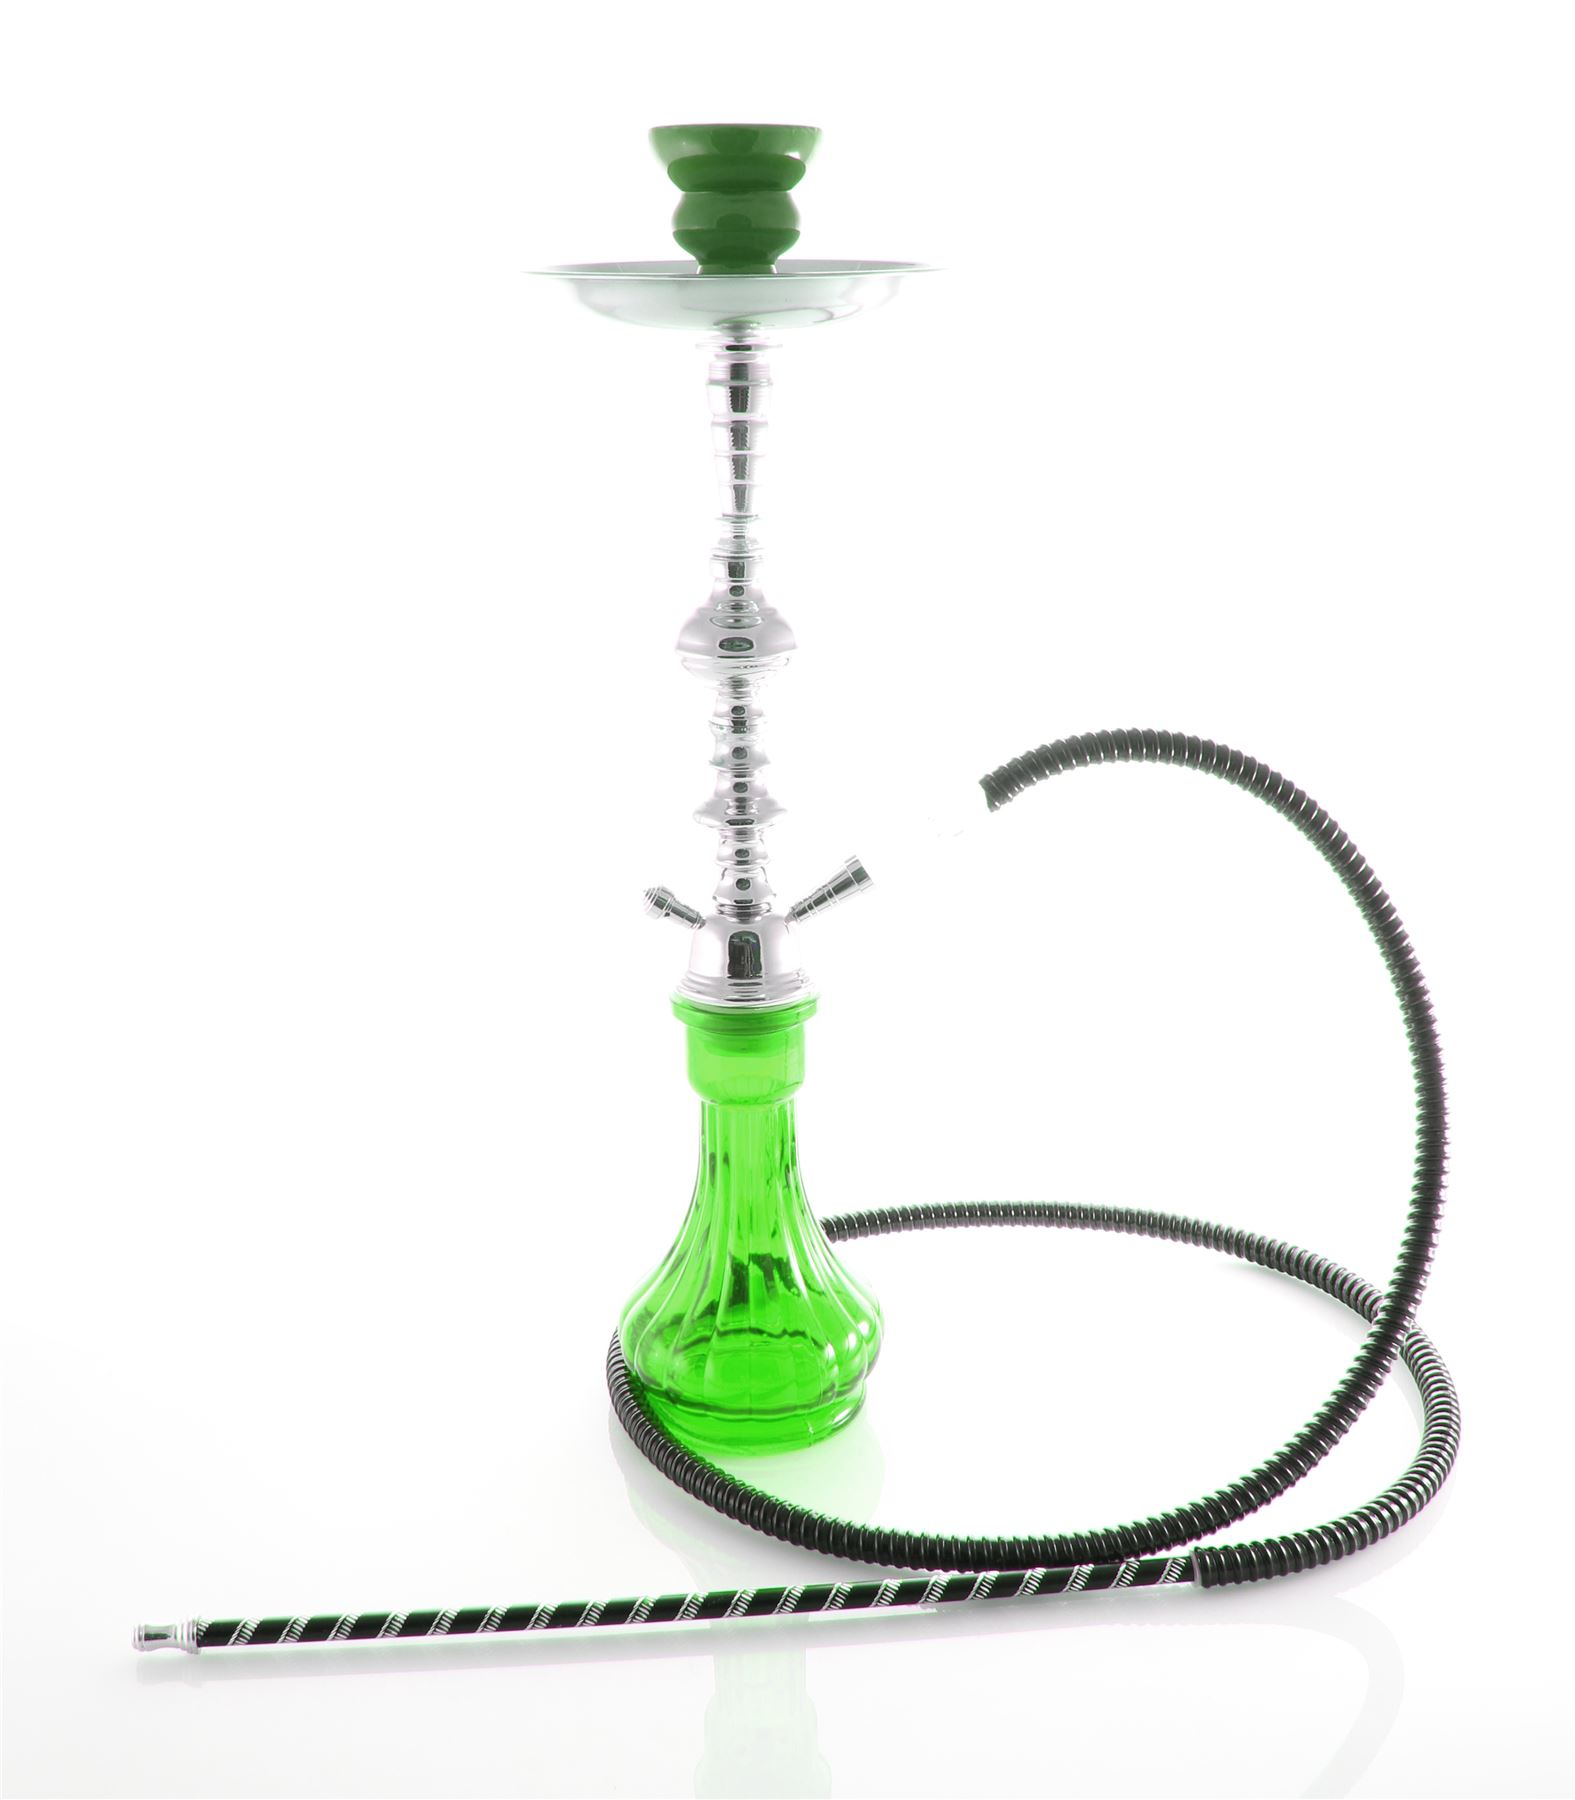 20 grun 1 hohe dortmund shisha hookah wasserpfeife narghile rauchen h 102 ebay. Black Bedroom Furniture Sets. Home Design Ideas